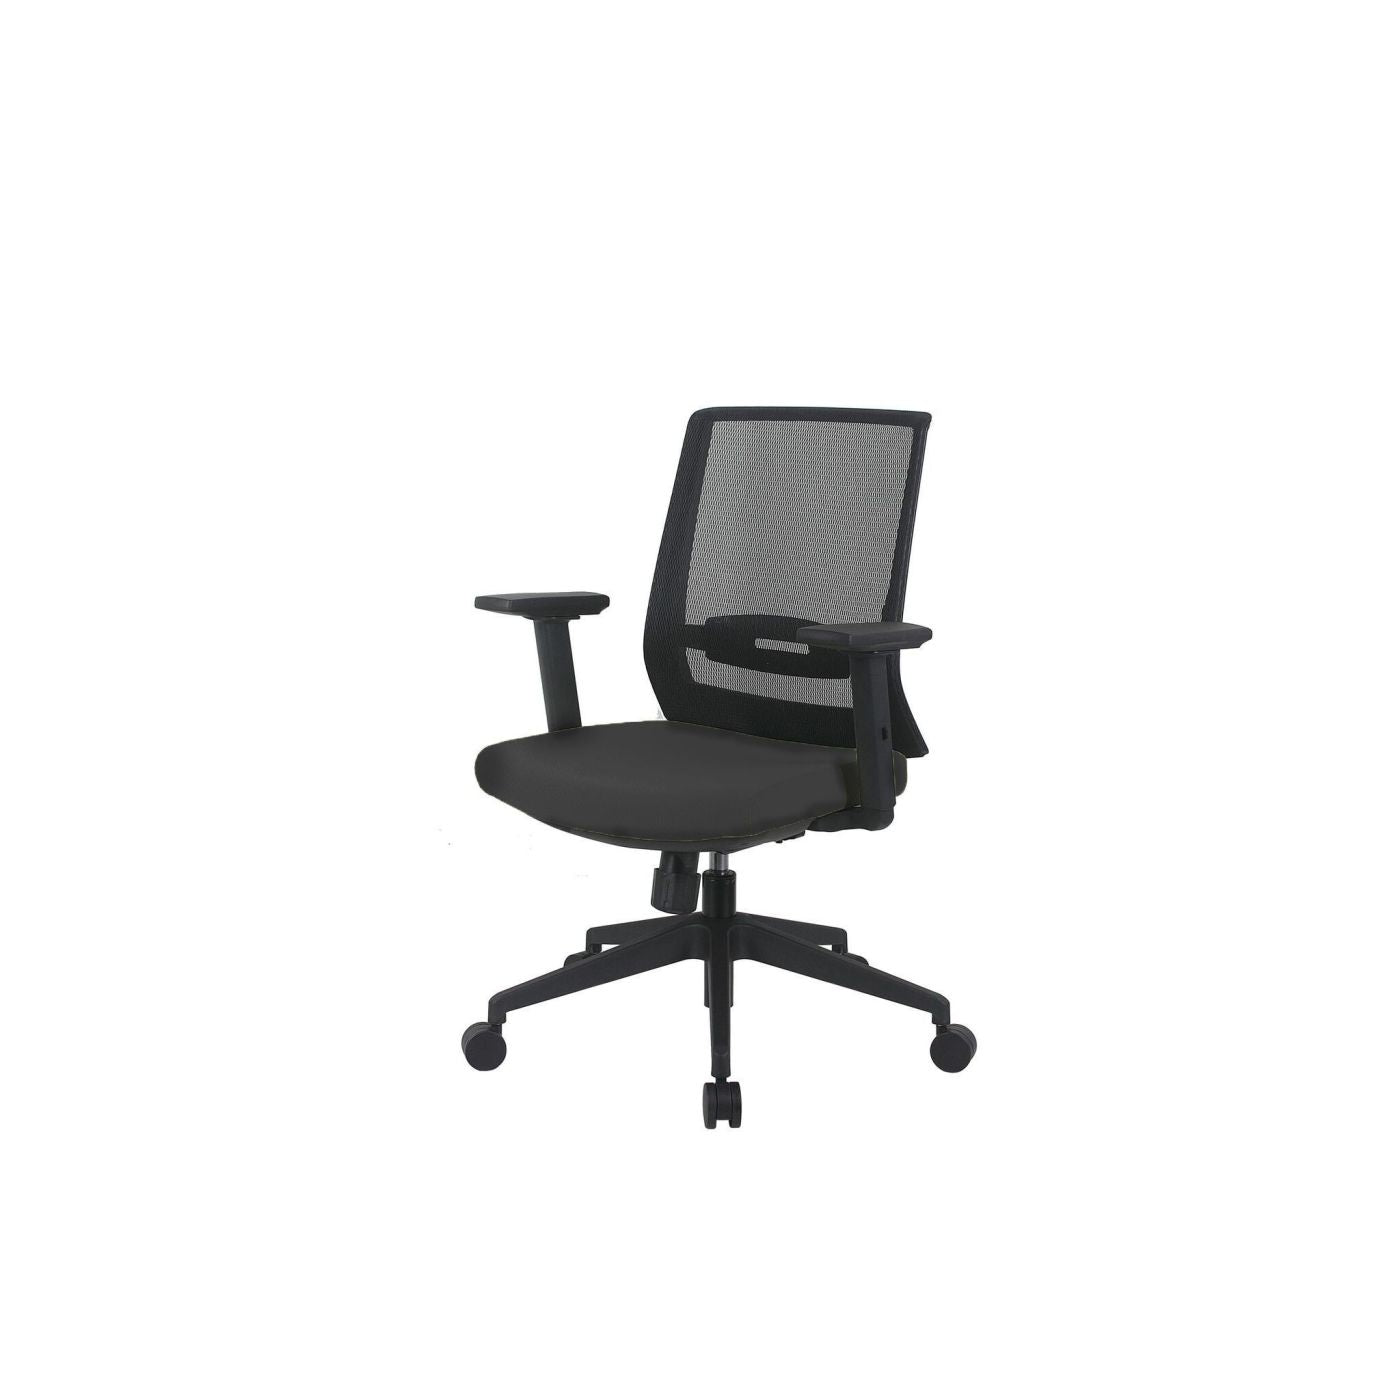 black mid breathable mesh malaysia back seat fampf swivel swanky ff saddle with office f chair